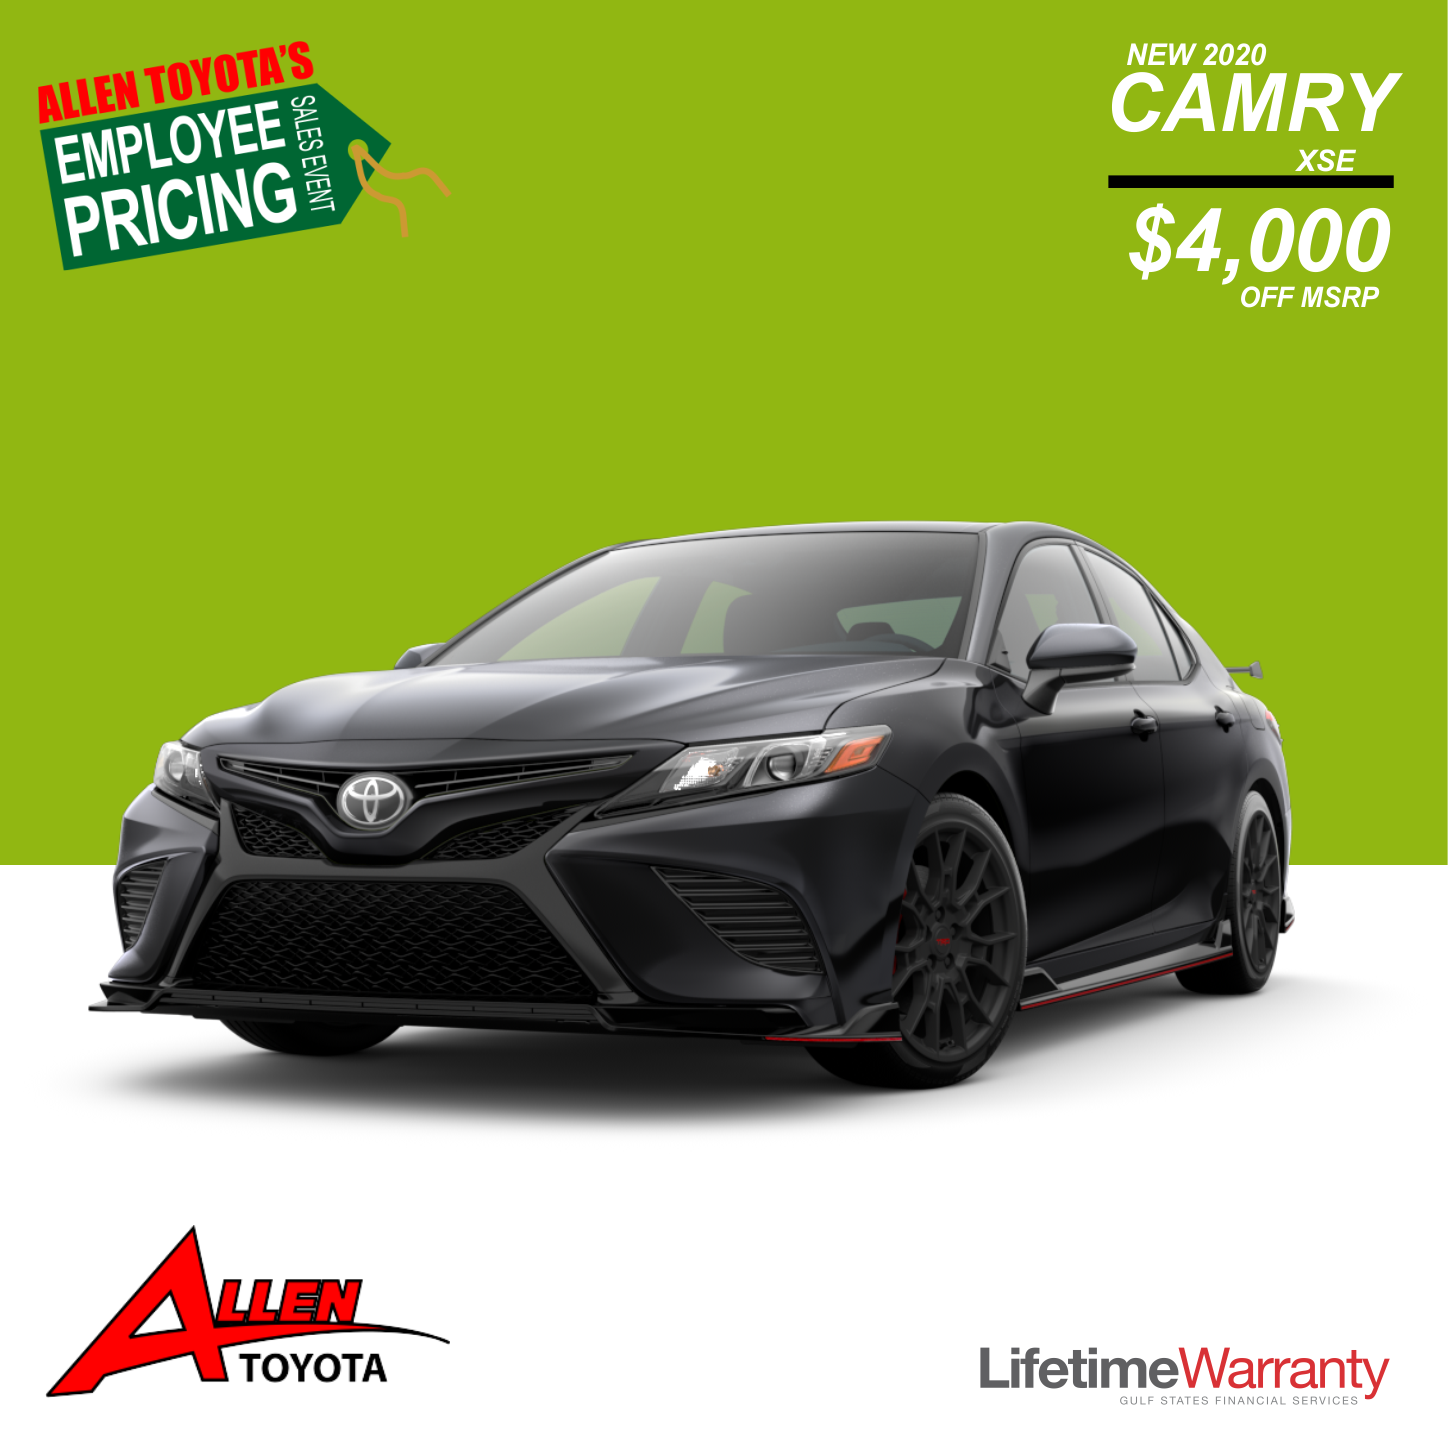 New 2020 Camry XSE Save $4,000!